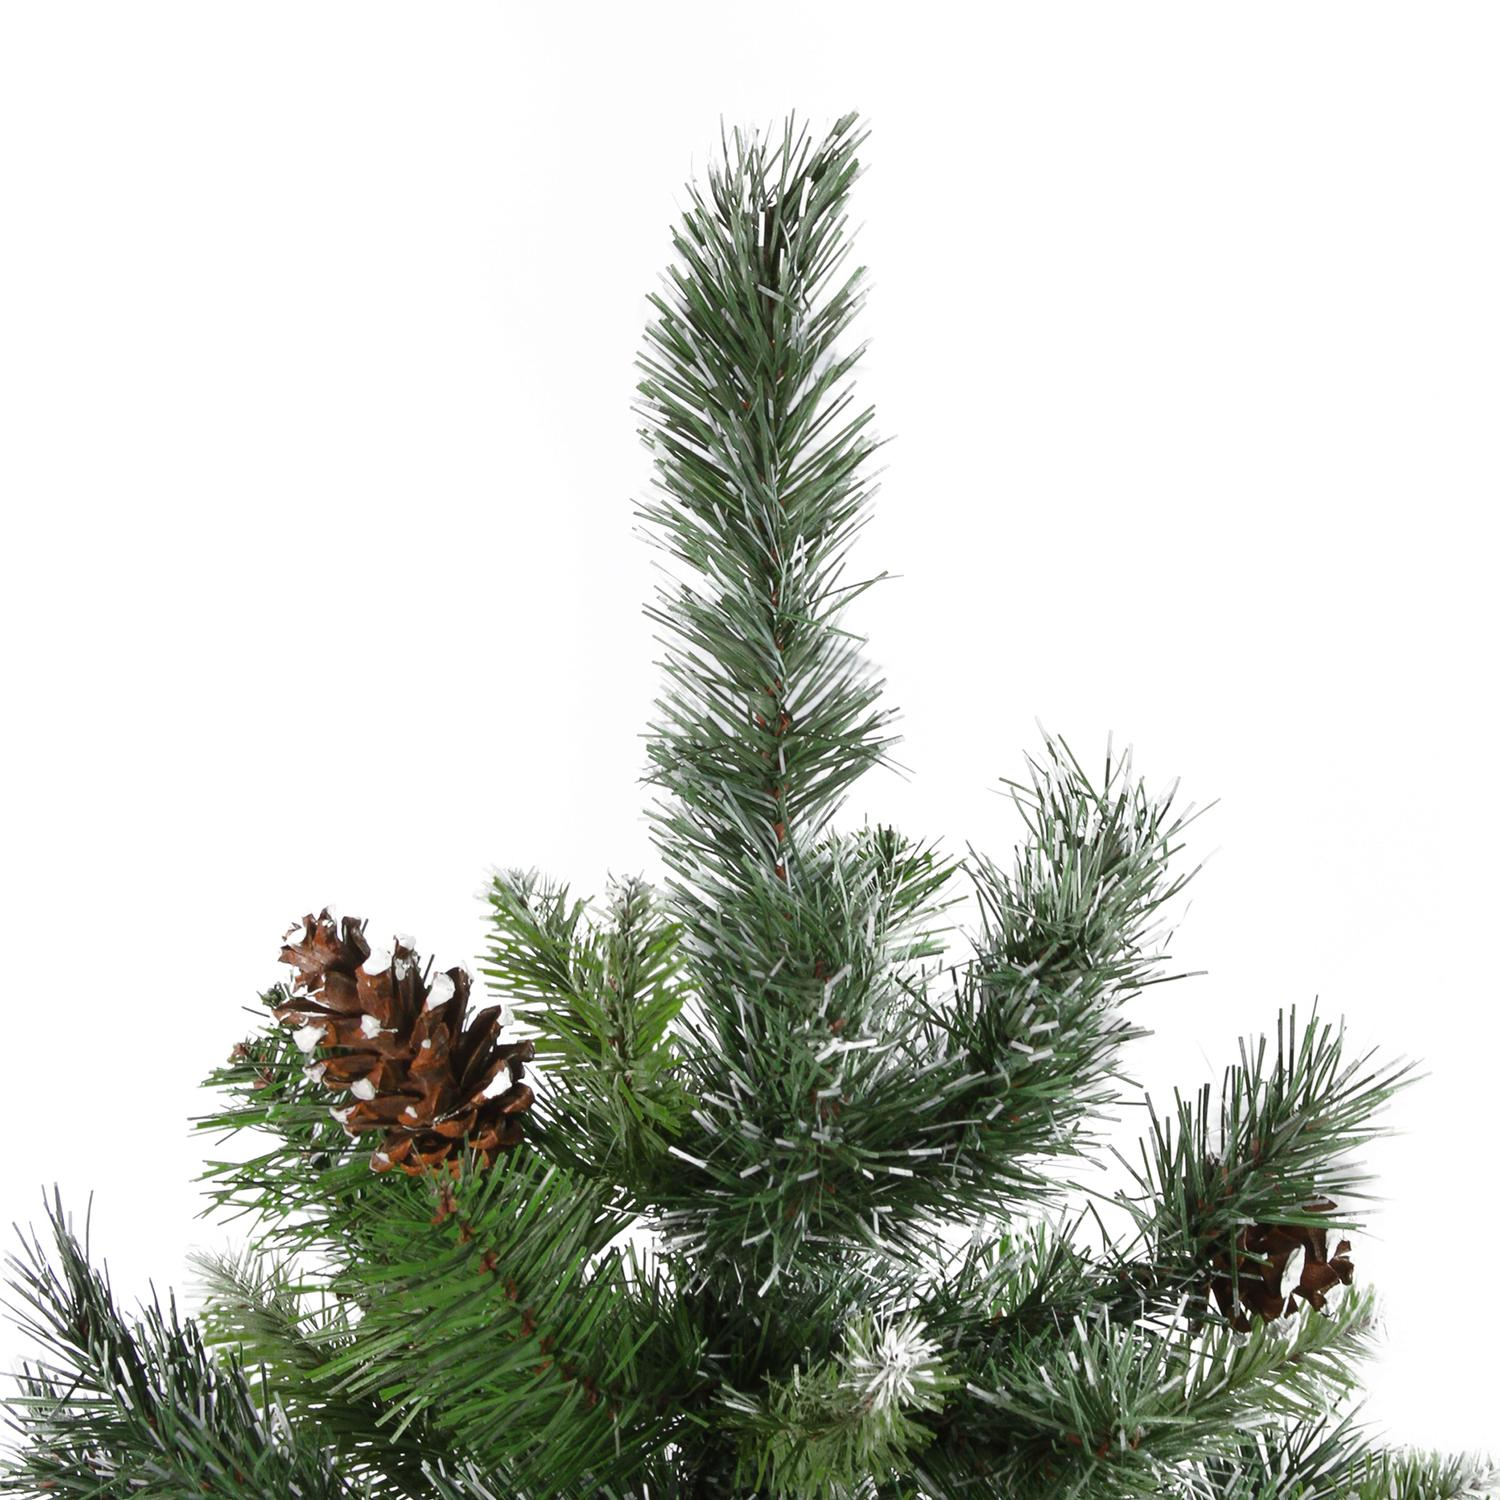 Artificial Christmas Tree With Pine Cones: 4' Snowy Delta Pine With Pine Cones Artificial Christmas